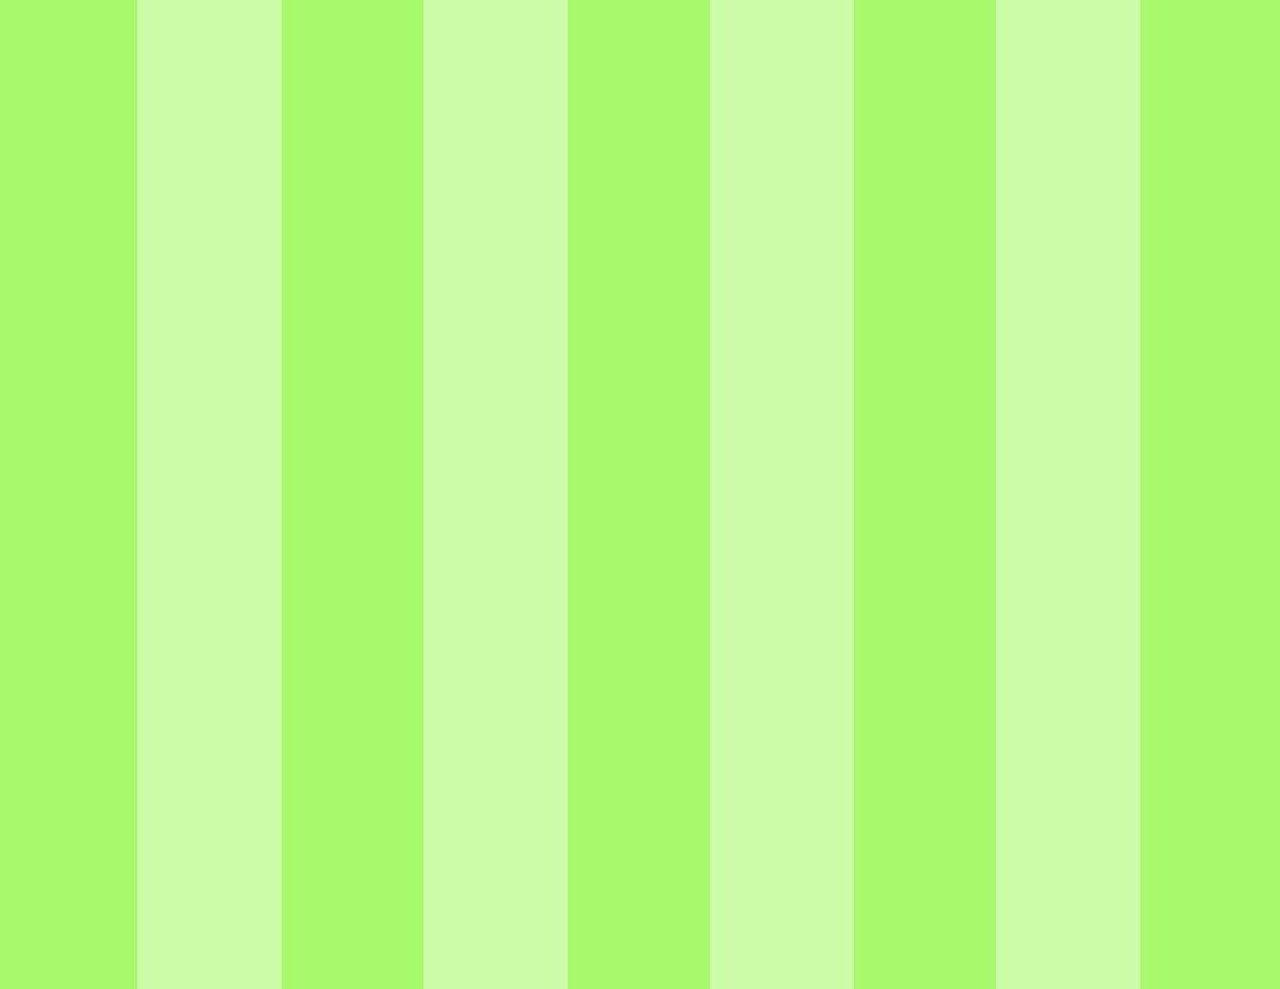 Neon green backgrounds wallpaper cave wallpapers for lime green background tumblr voltagebd Images